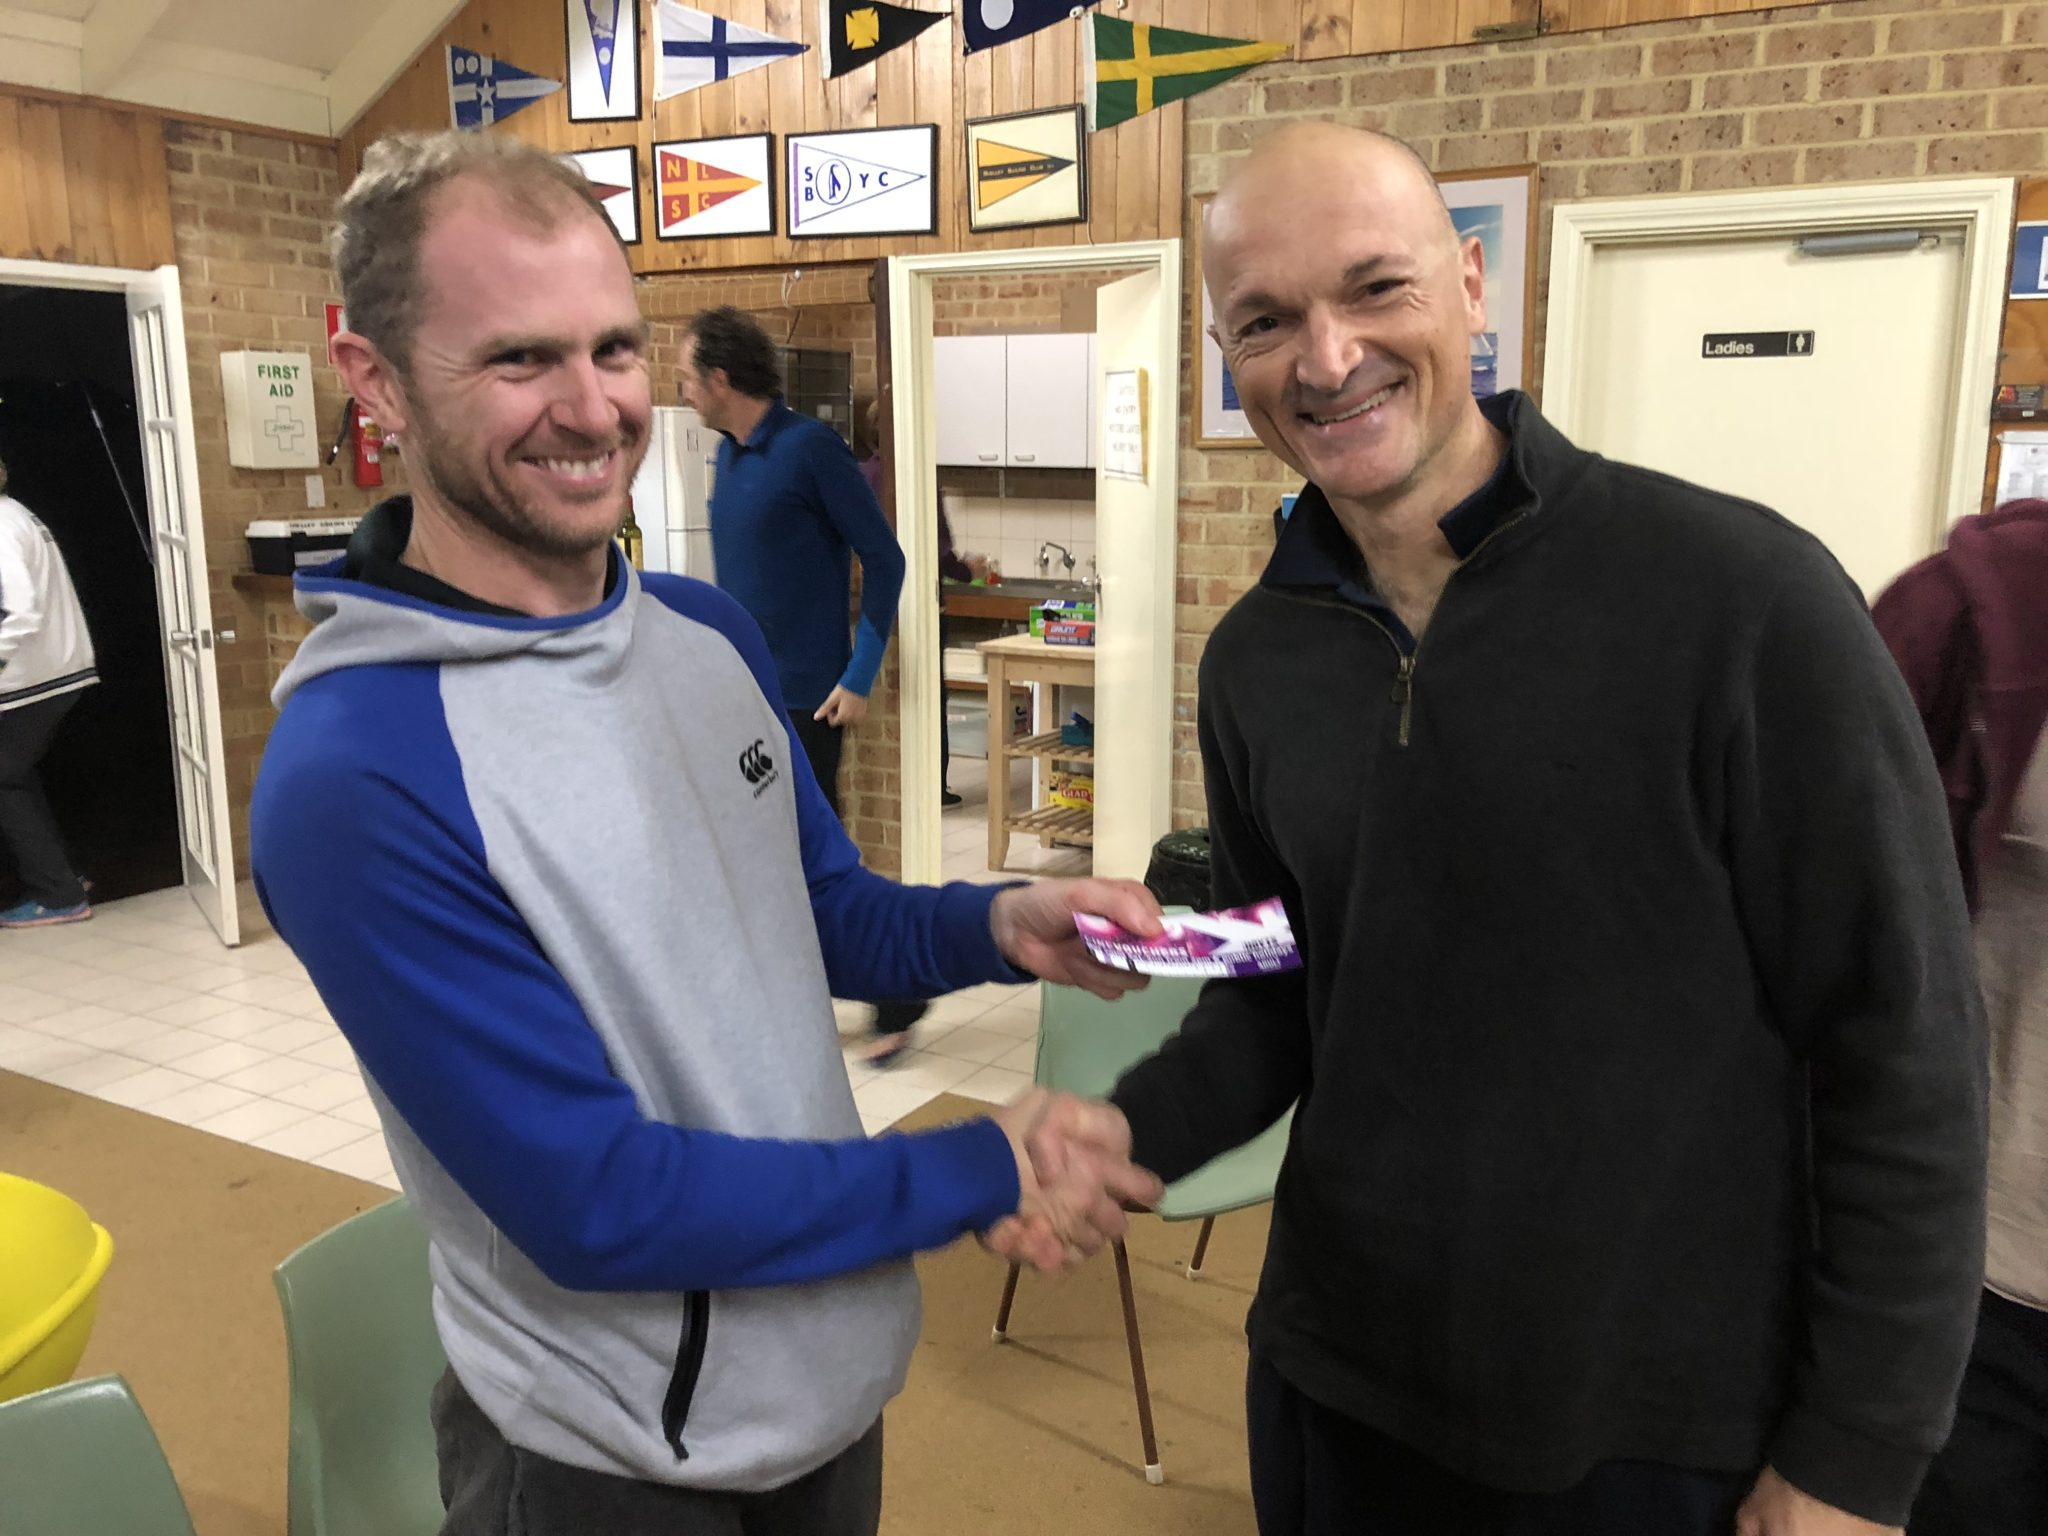 Tues 17th July 2018 : Tonight's photo shows club member Mike Laloli, who claims he dragged Carlo around the course presenting tonight's winner Carlo Cottino with a movie voucher